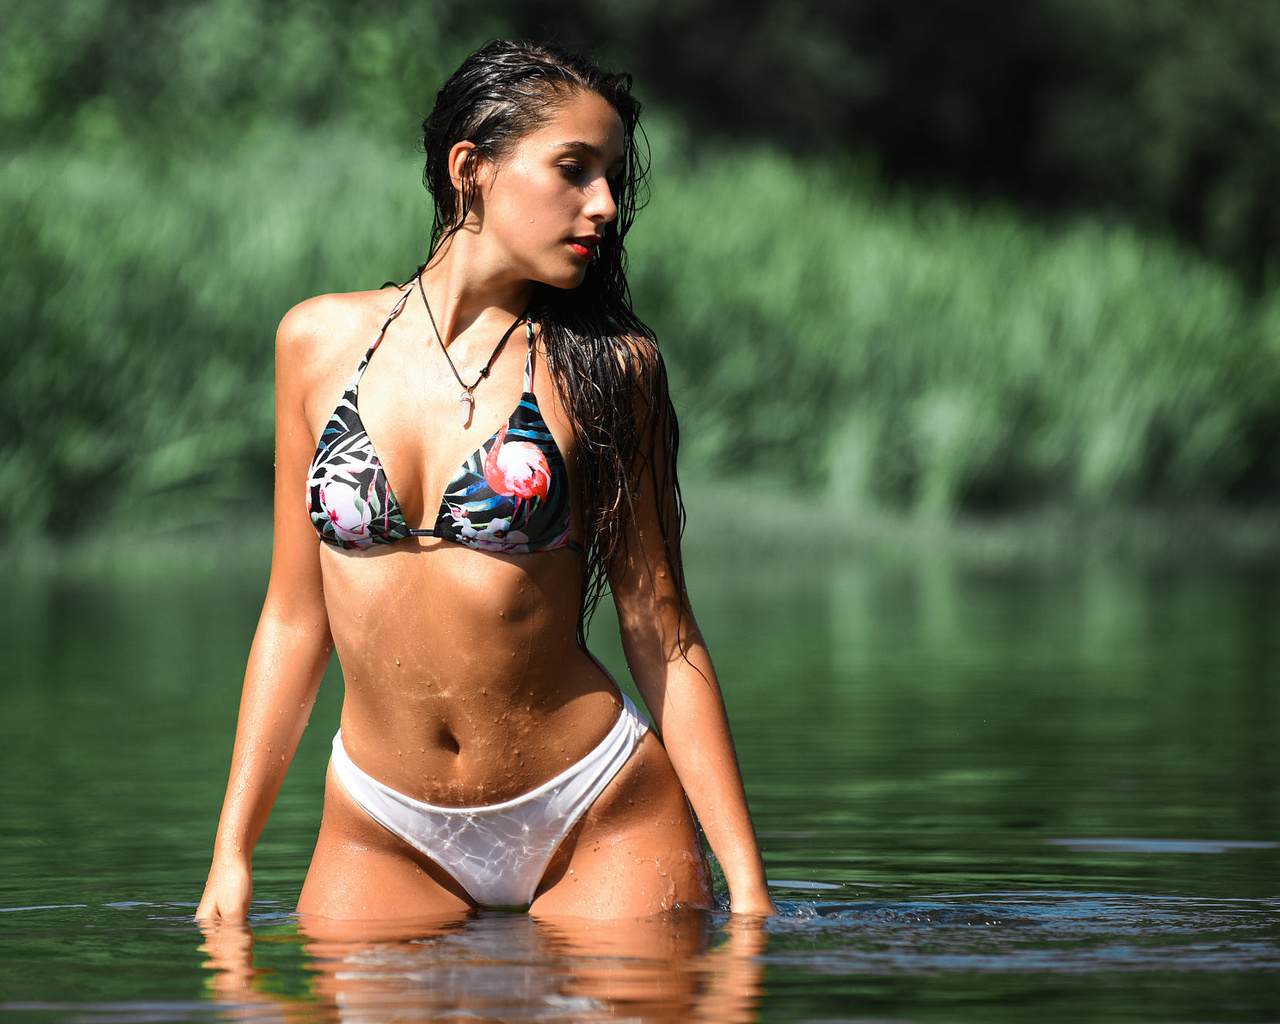 women, red lipstick, belly, long hair, swimwear, bikini, river, brunette, women outdoors, wet body, wet hair